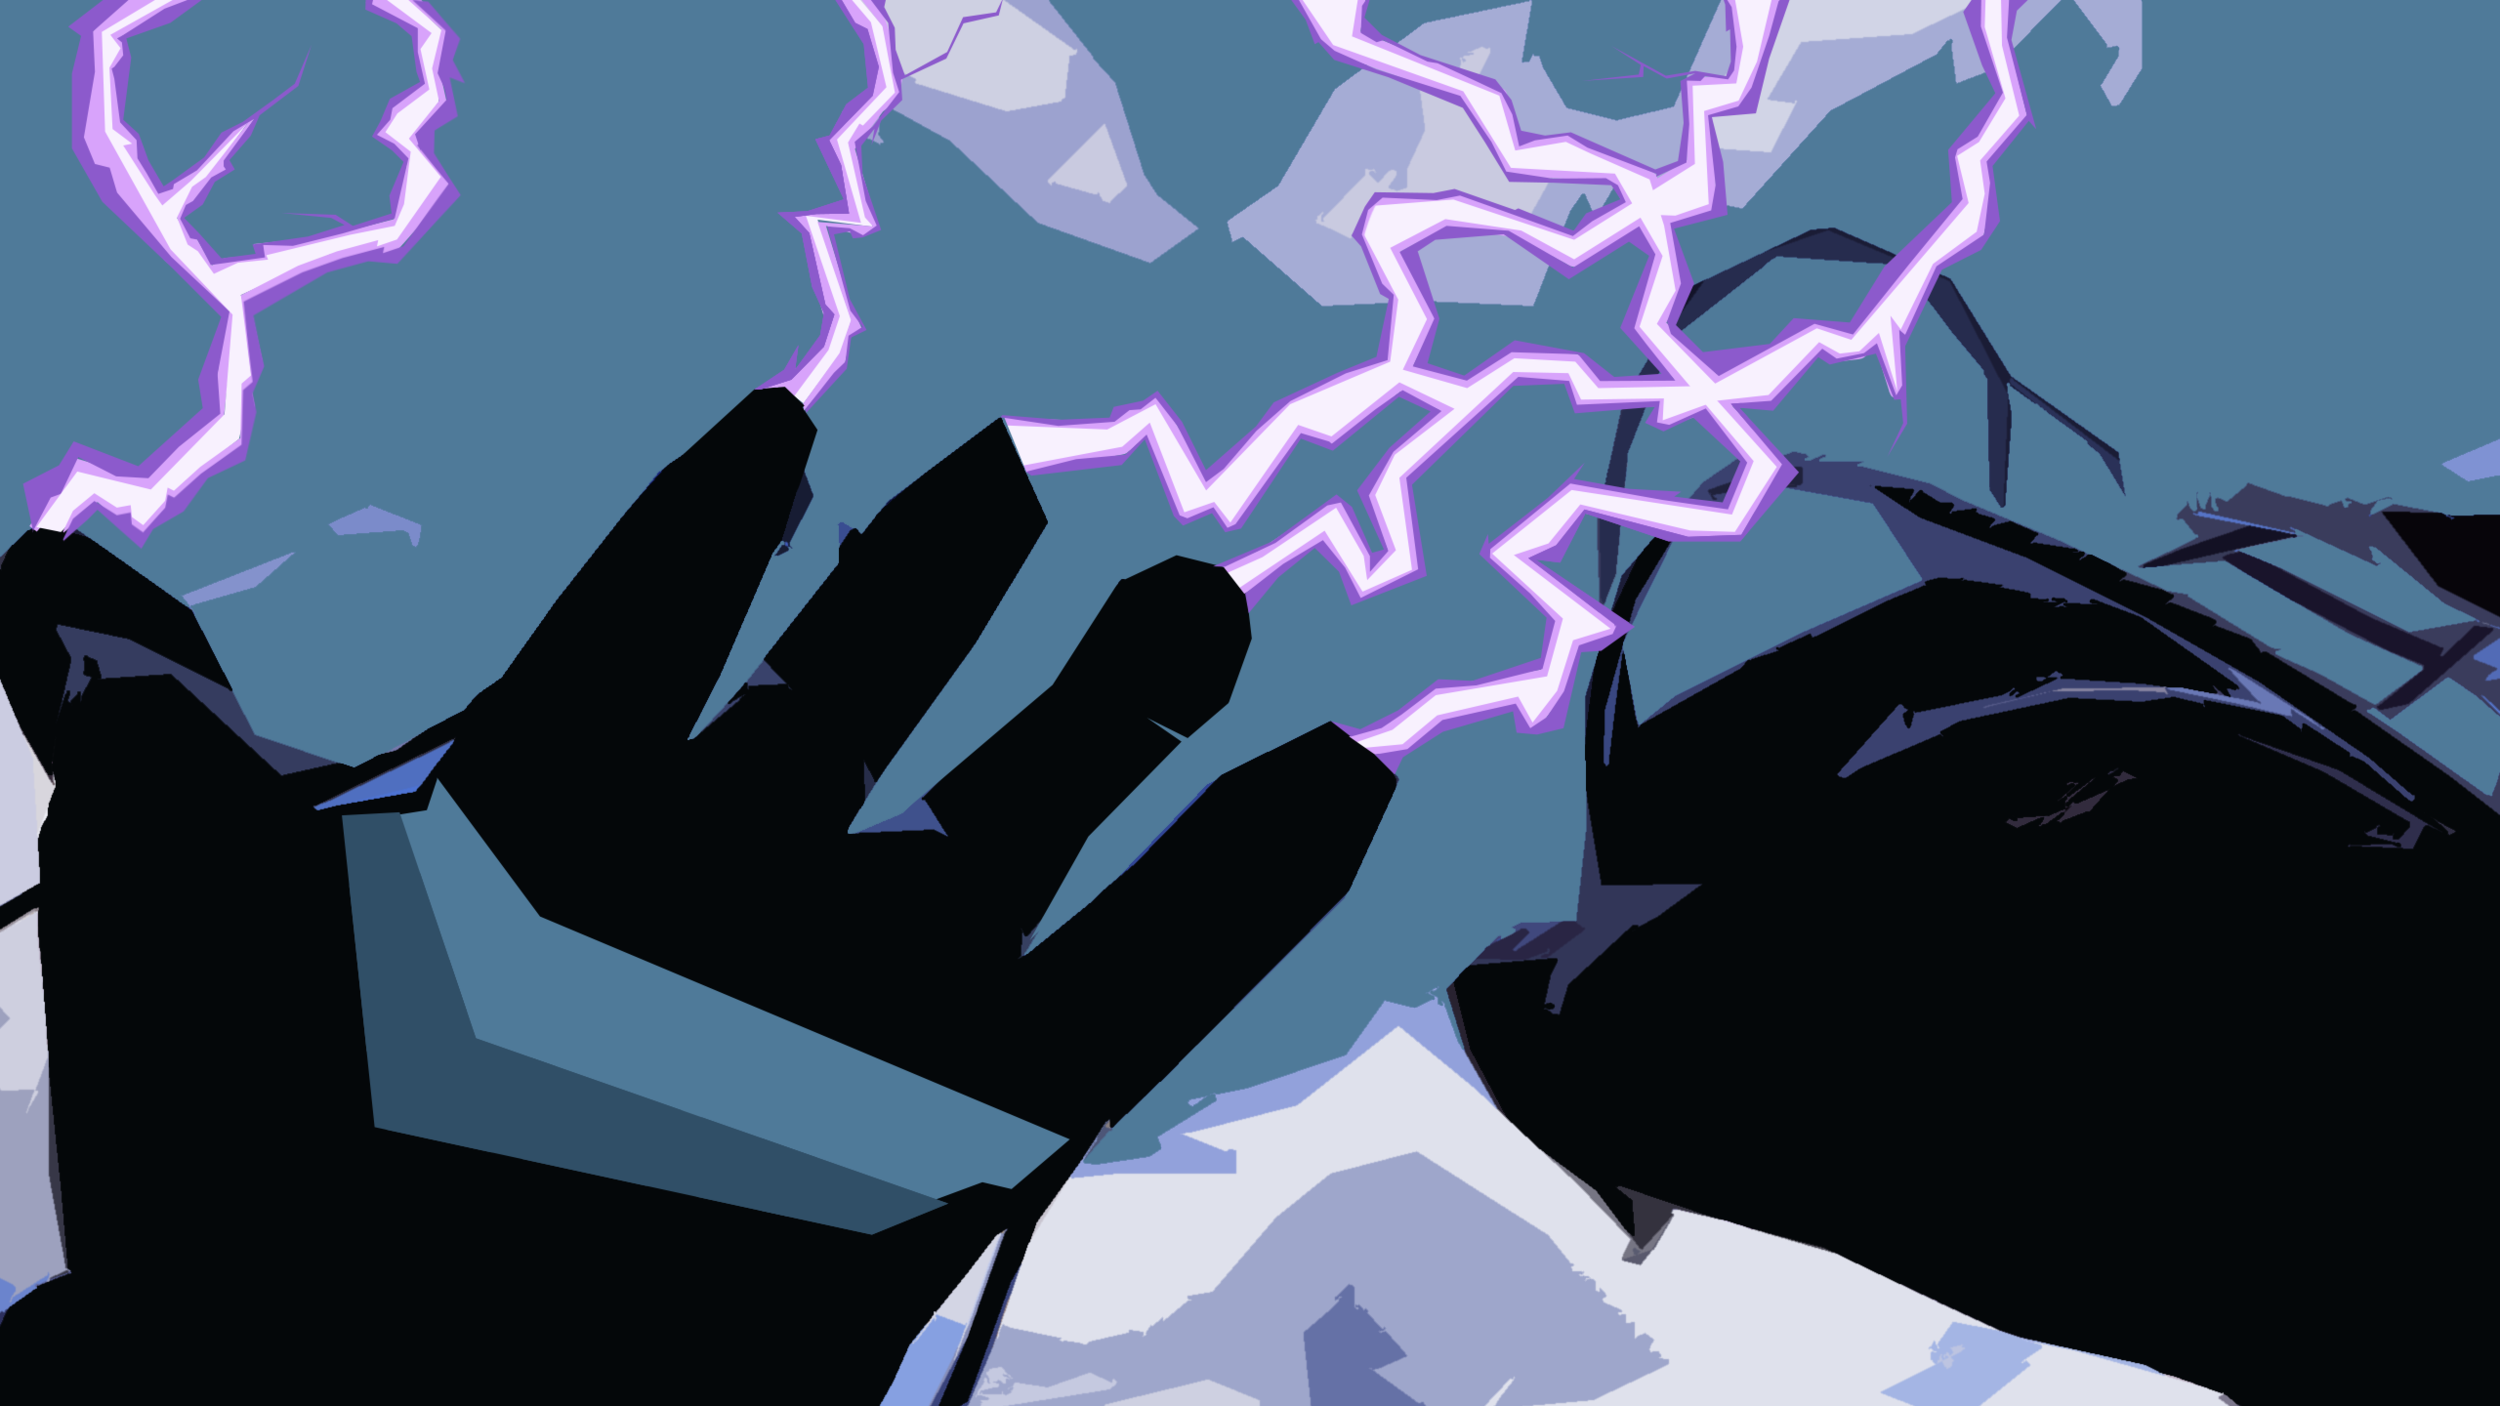 He puts on his two augmented gloves which gives him the power to use energy in the from of electrical matter. Daytron feels the power bestowed upon him and is ready...